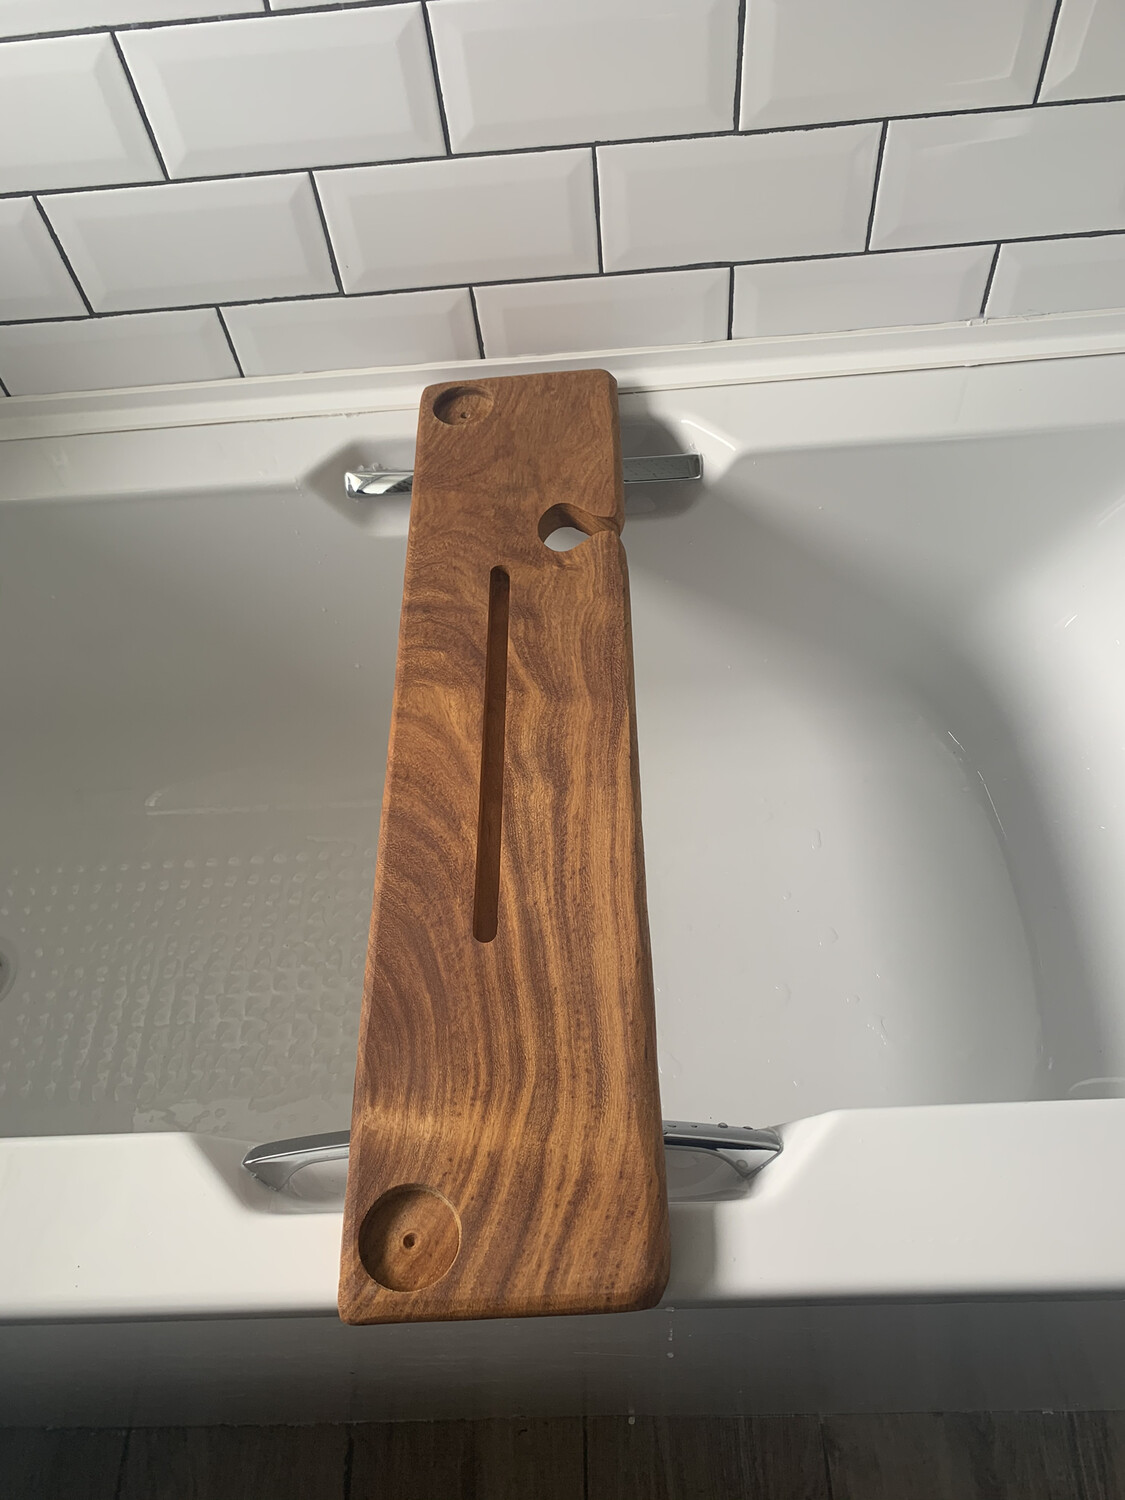 Live Edge Mango Bespoke Rustic Bath Caddy Tray Readymade